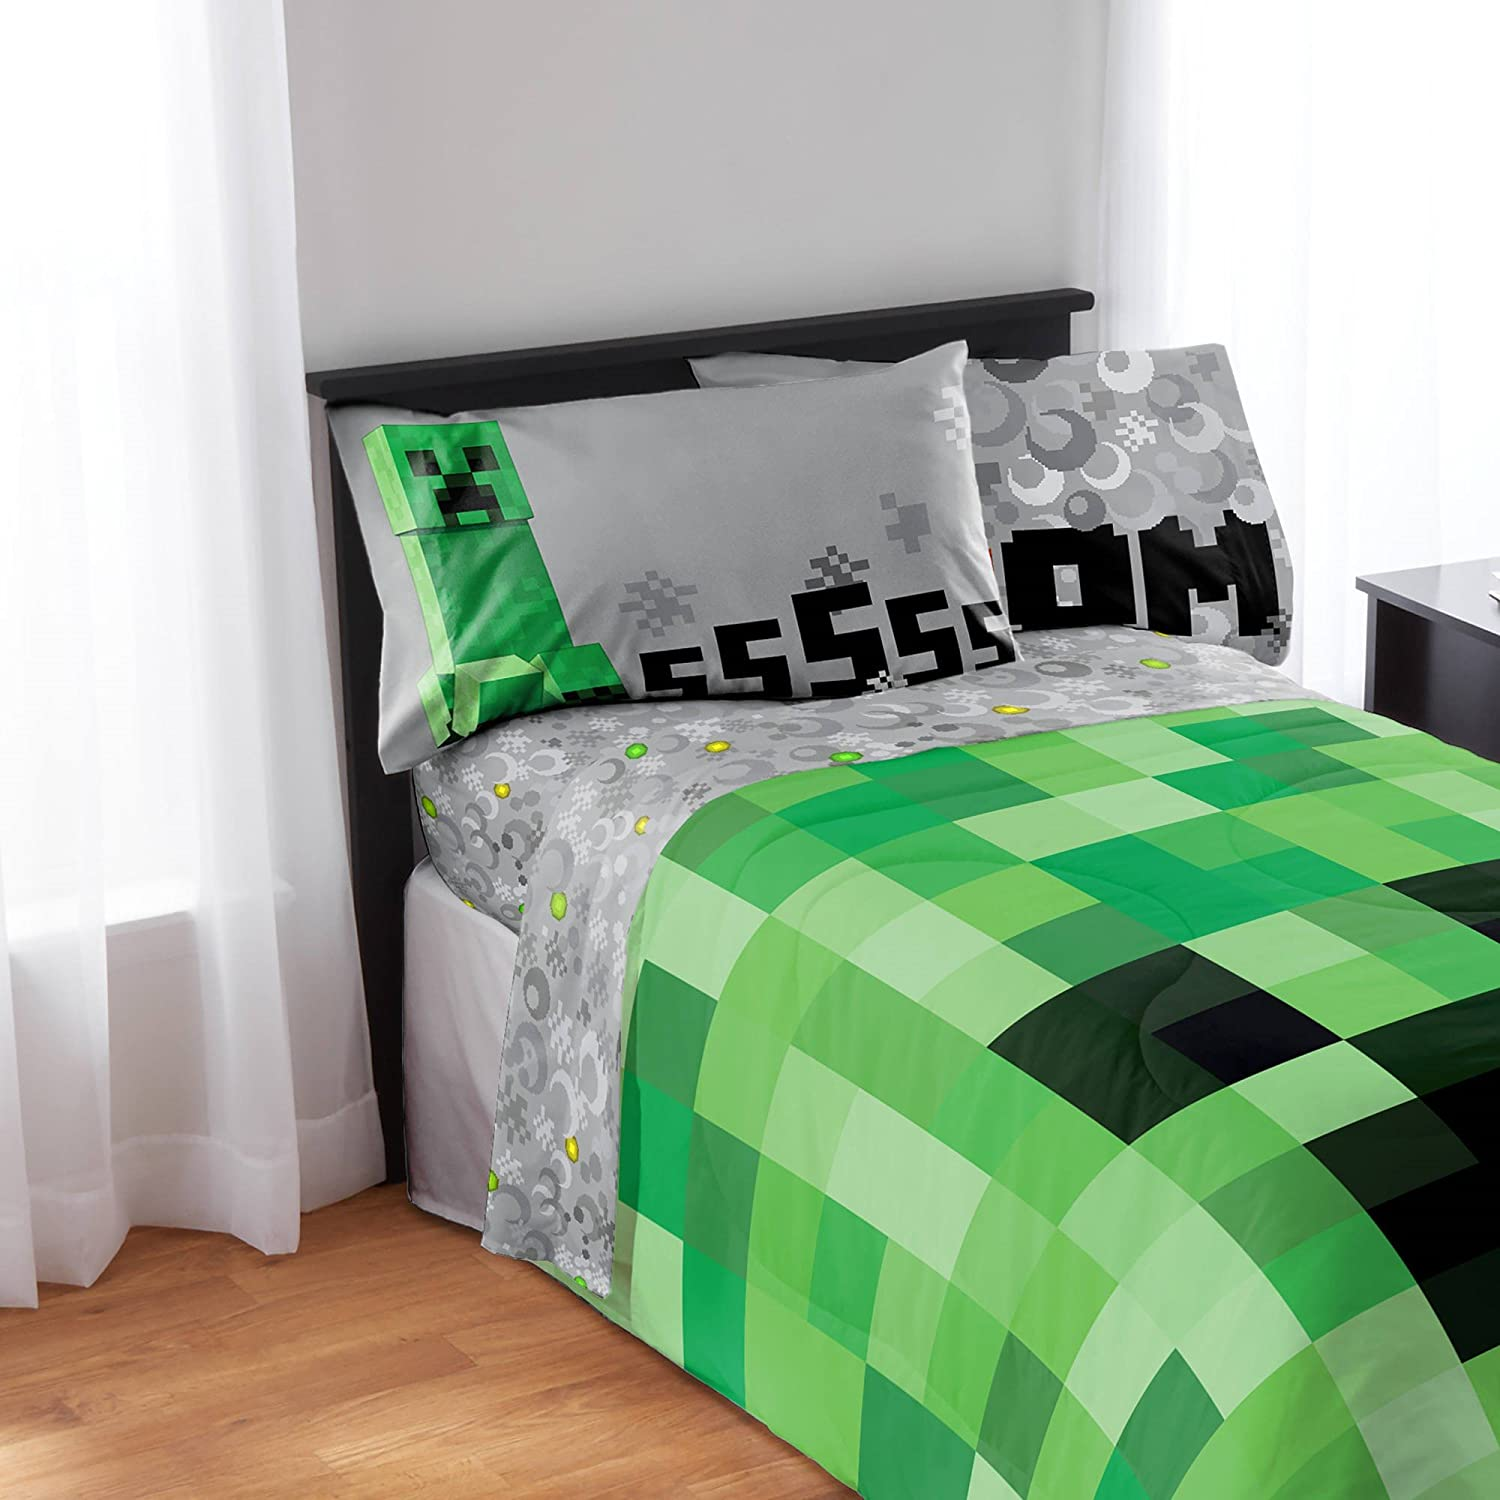 Minecraft 4-Piece Microfiber Sheet Set - Full Jay Franco & Sons Inc.